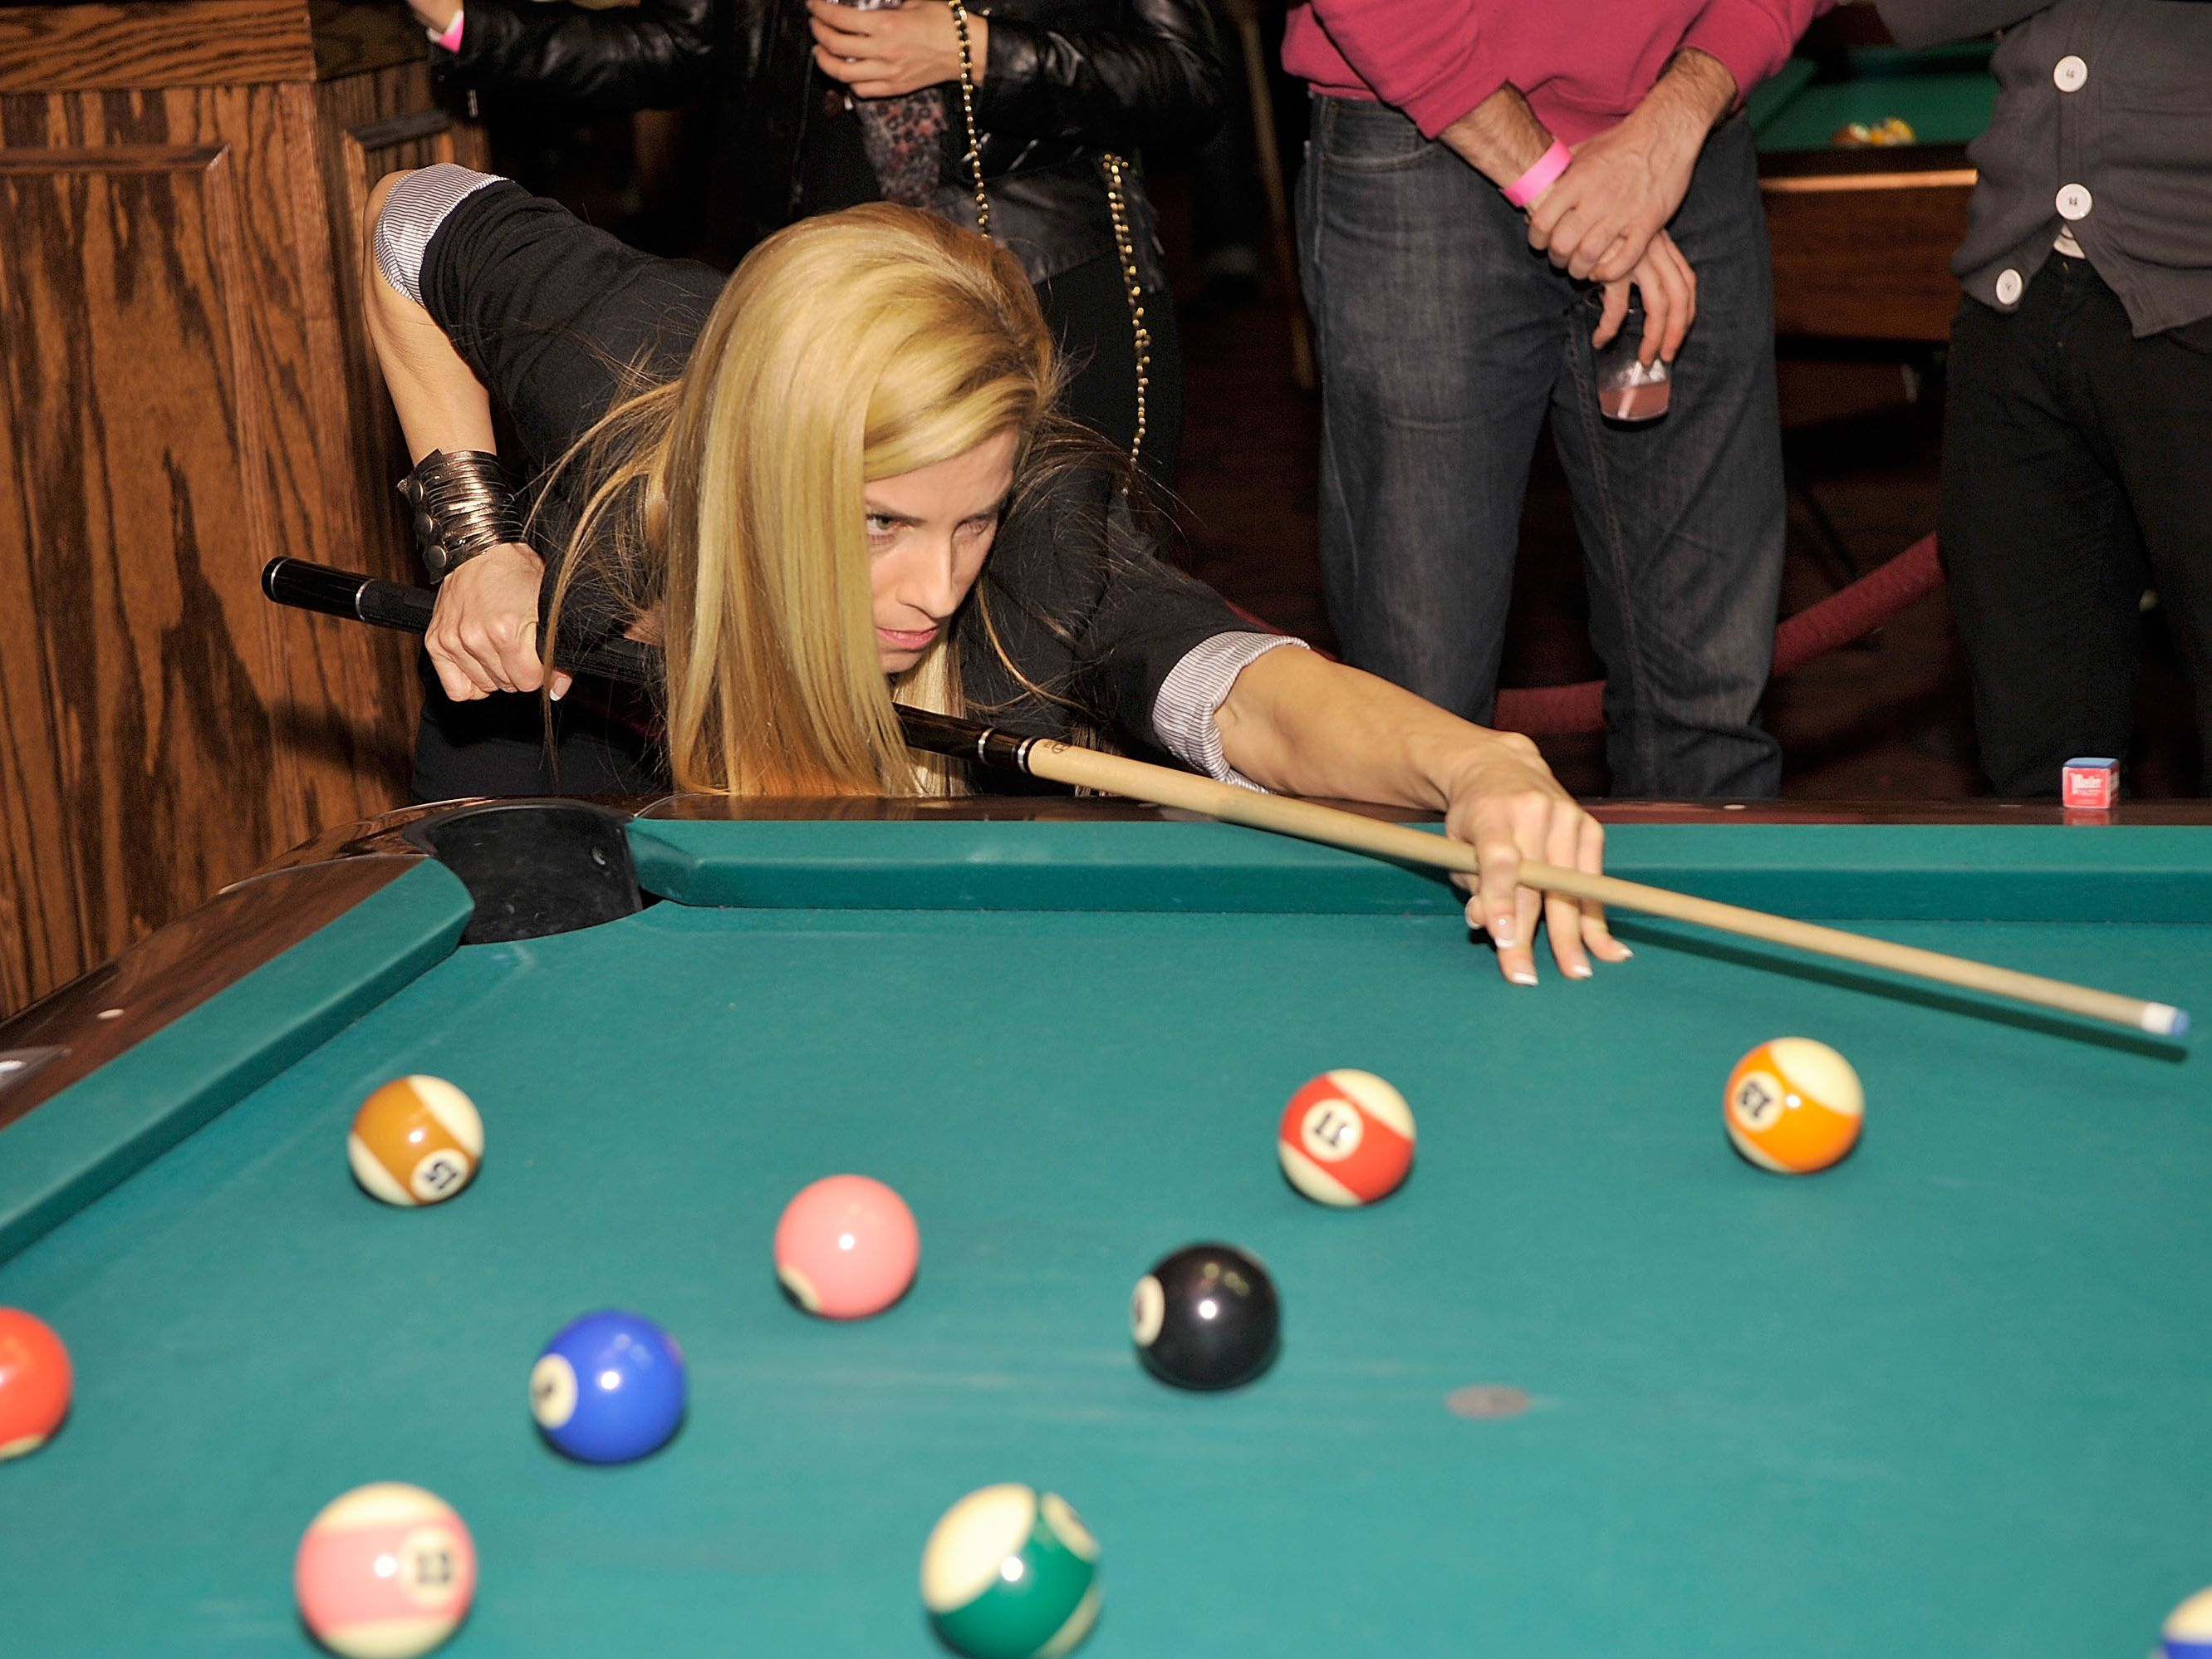 Straight Pool: Tips For Improved Play